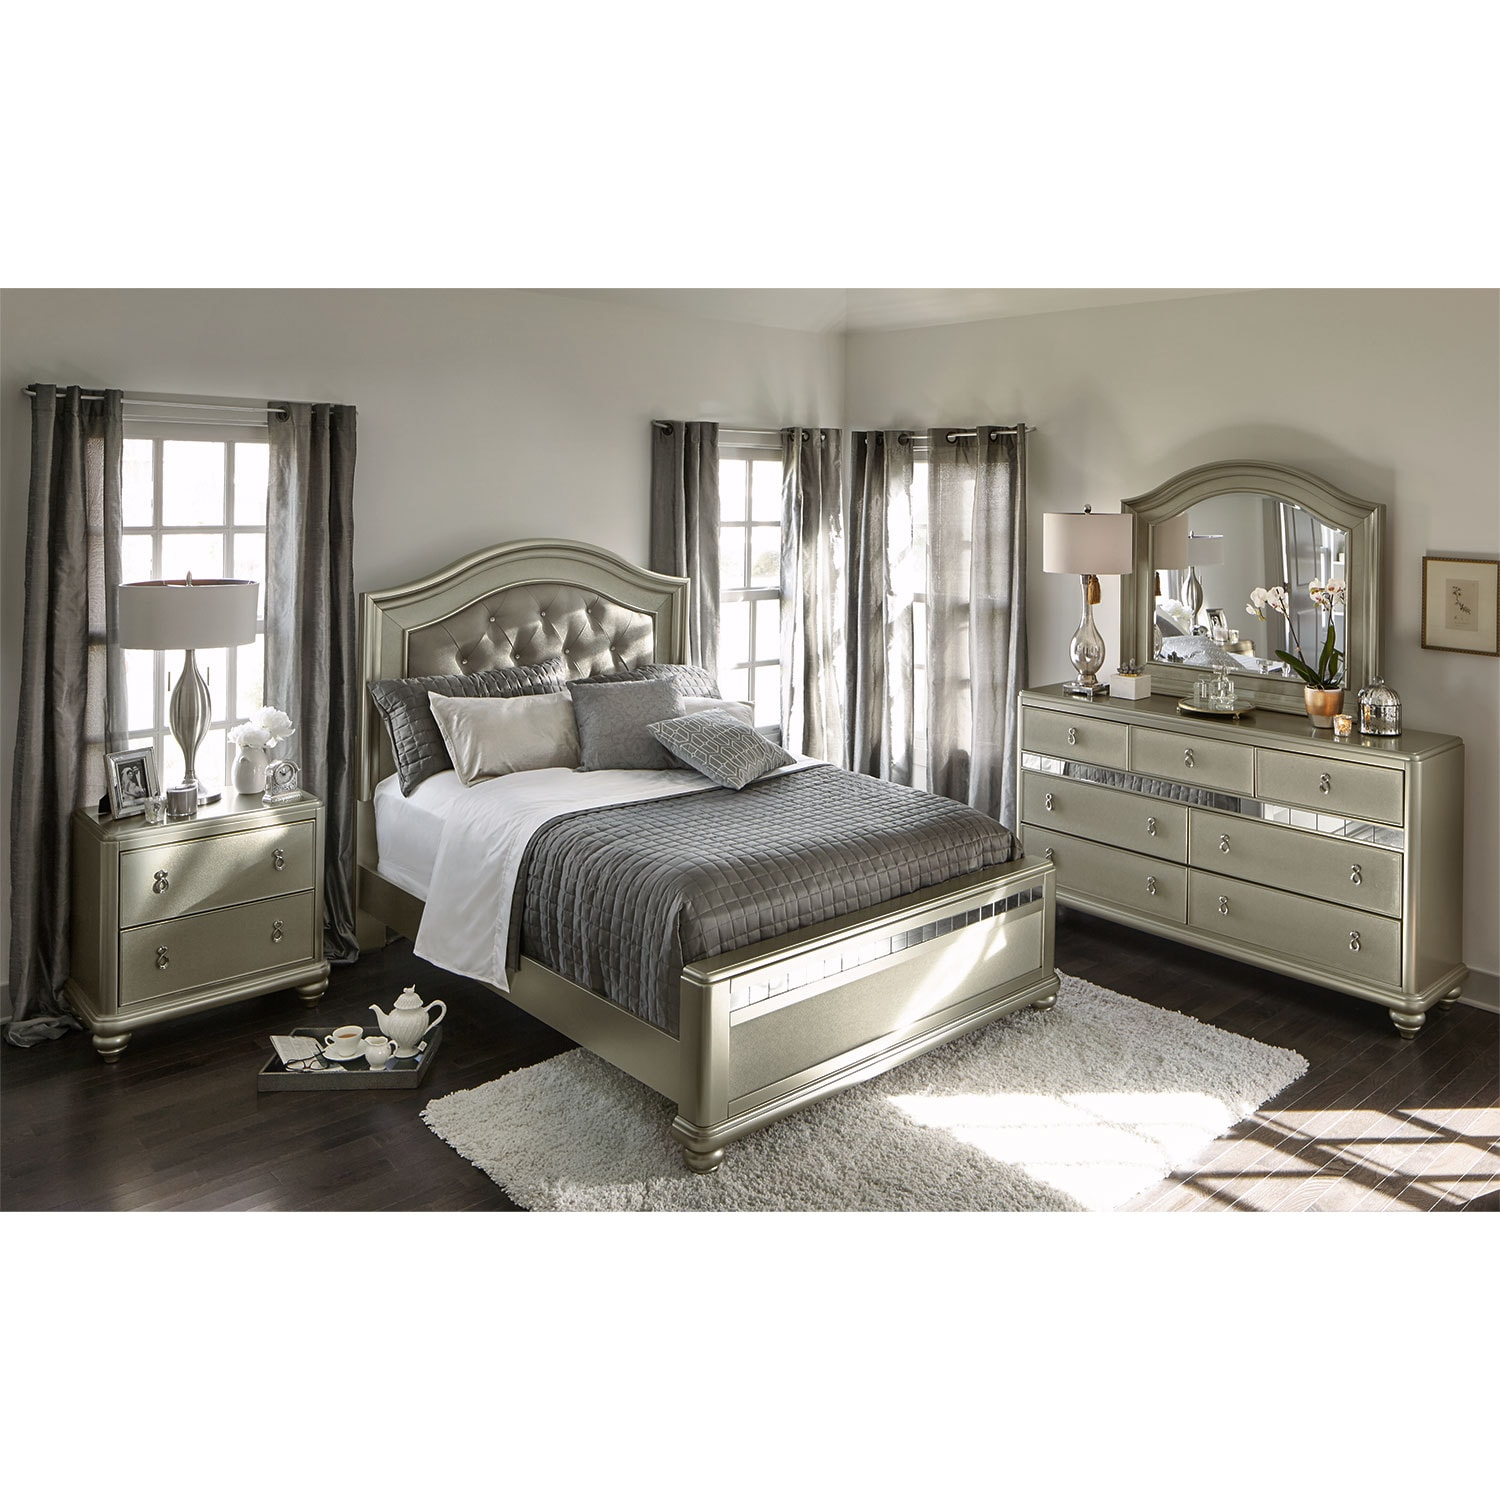 Serena Queen Bed Platinum Value City Furniture and Mattresses